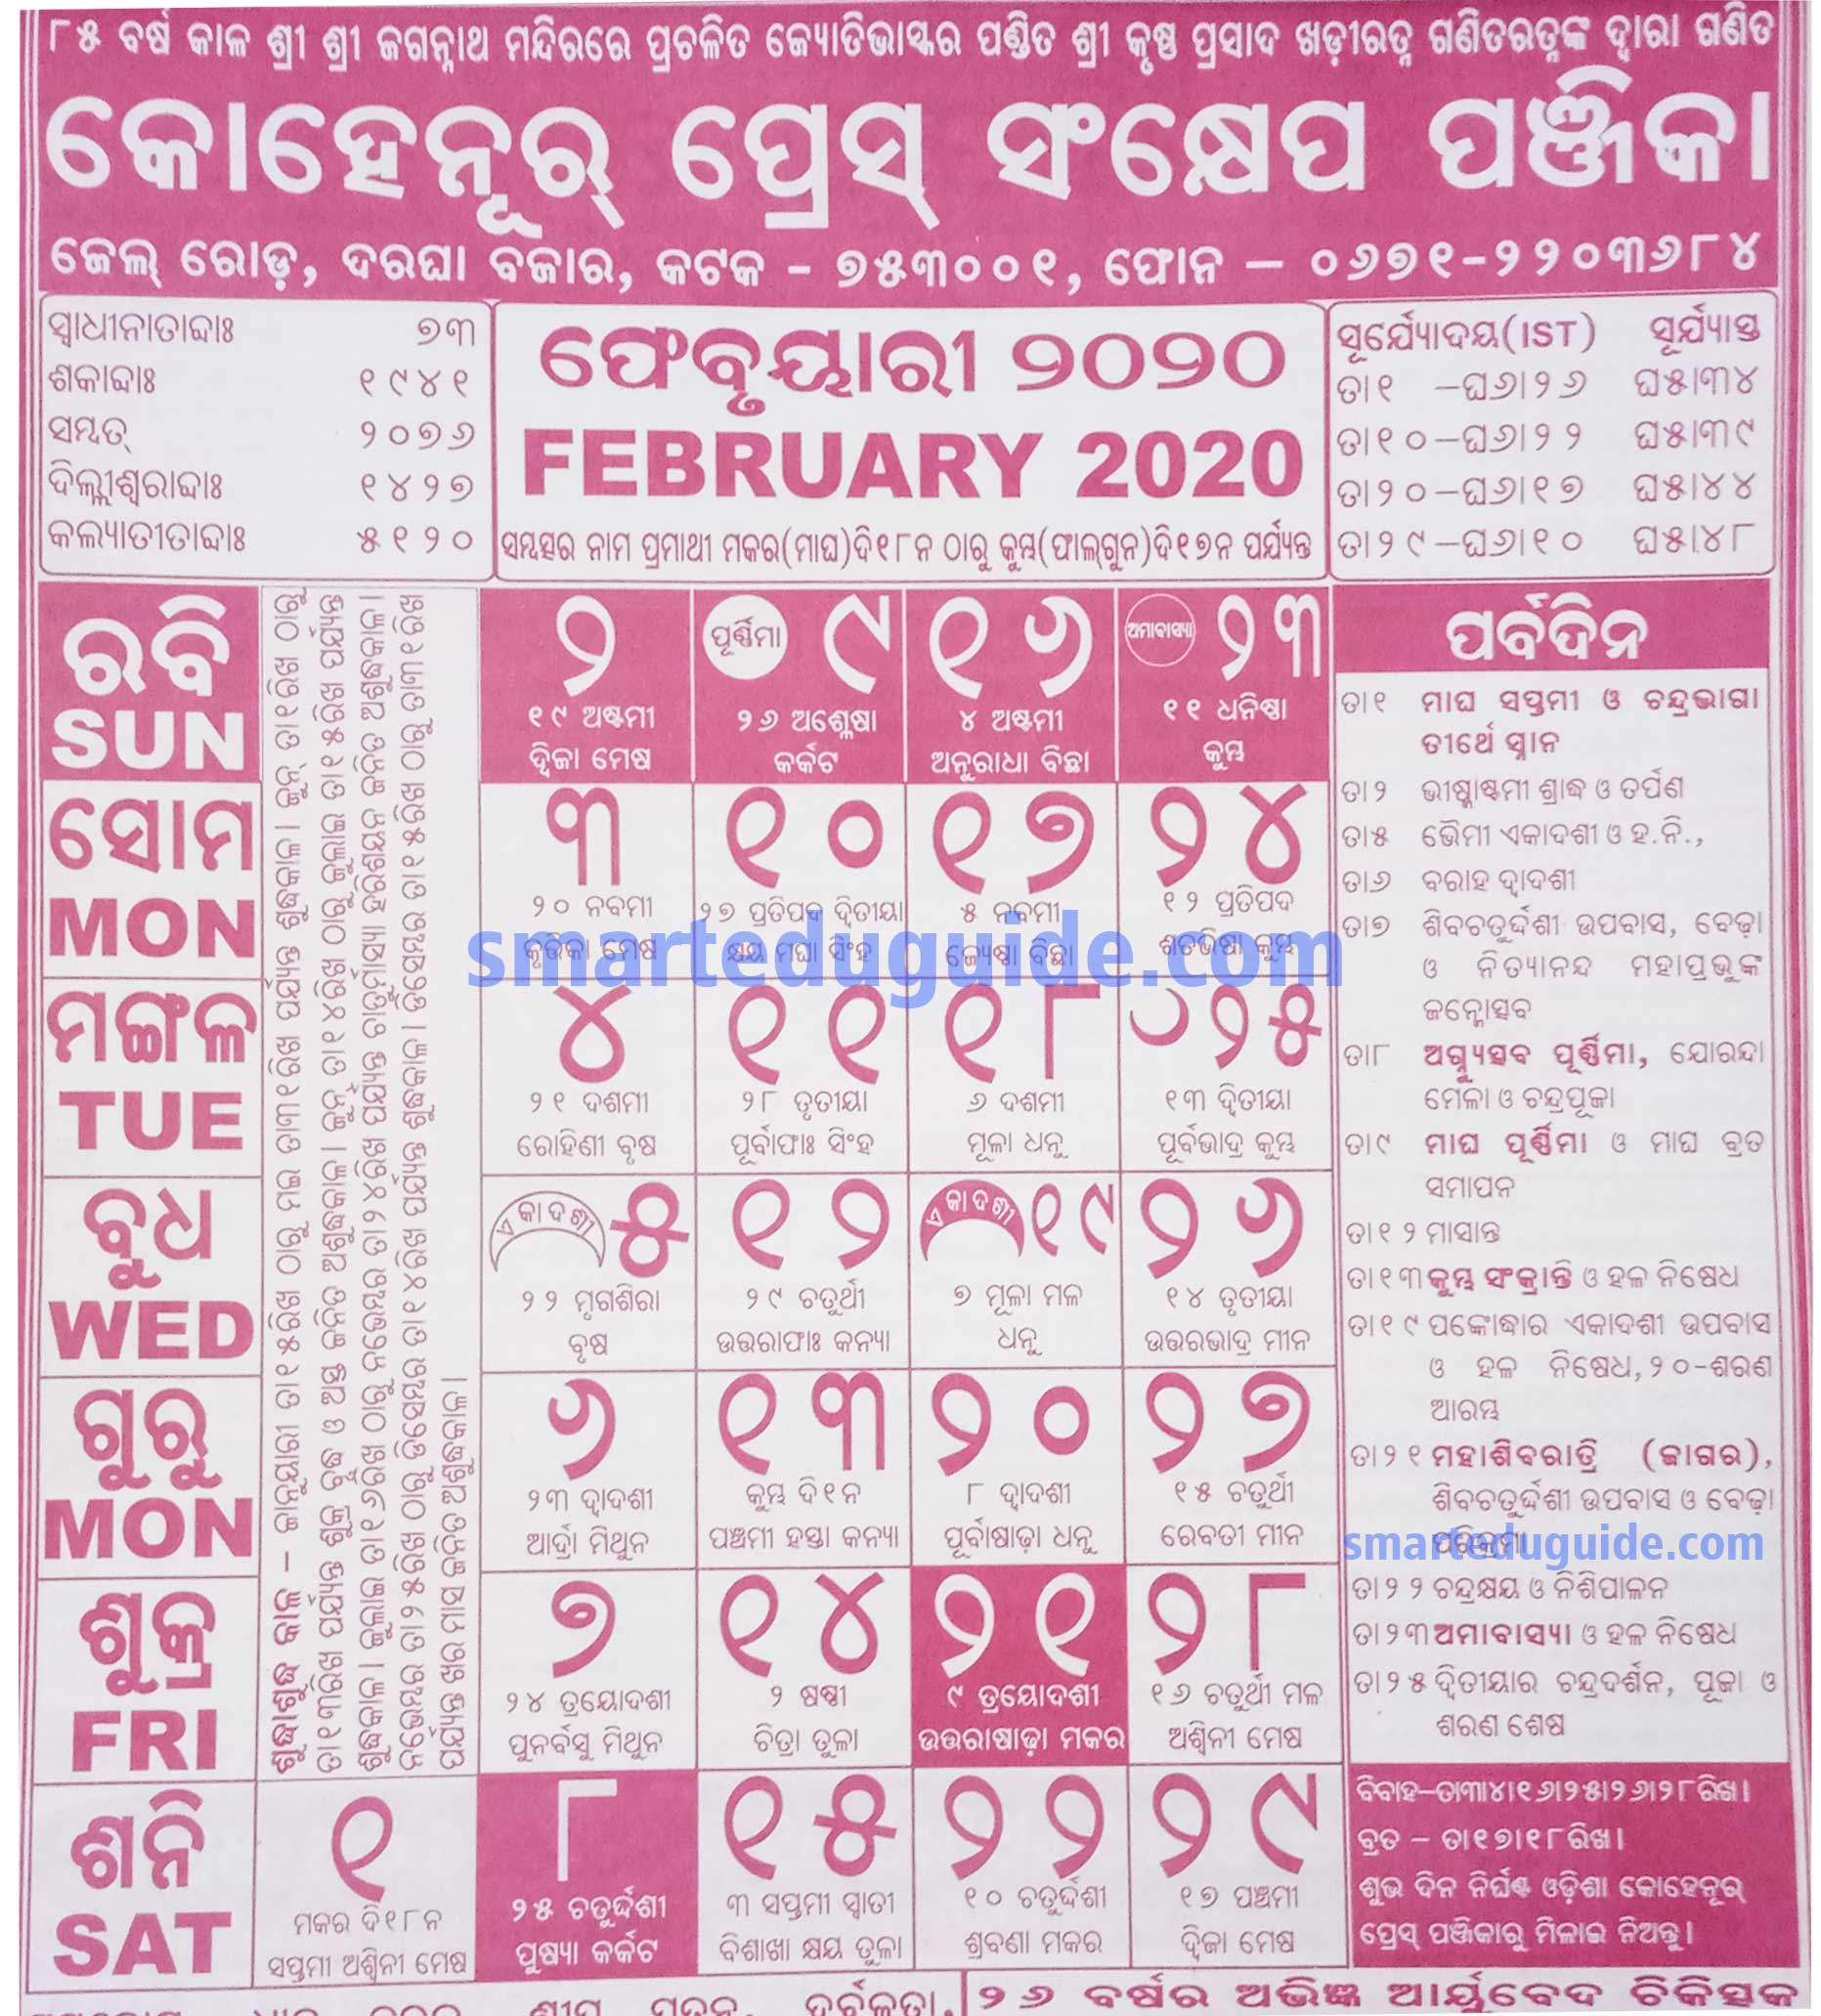 Odia Kohinoor Calendar 2020 February | Odishain intended for Odia Calendar February 2020